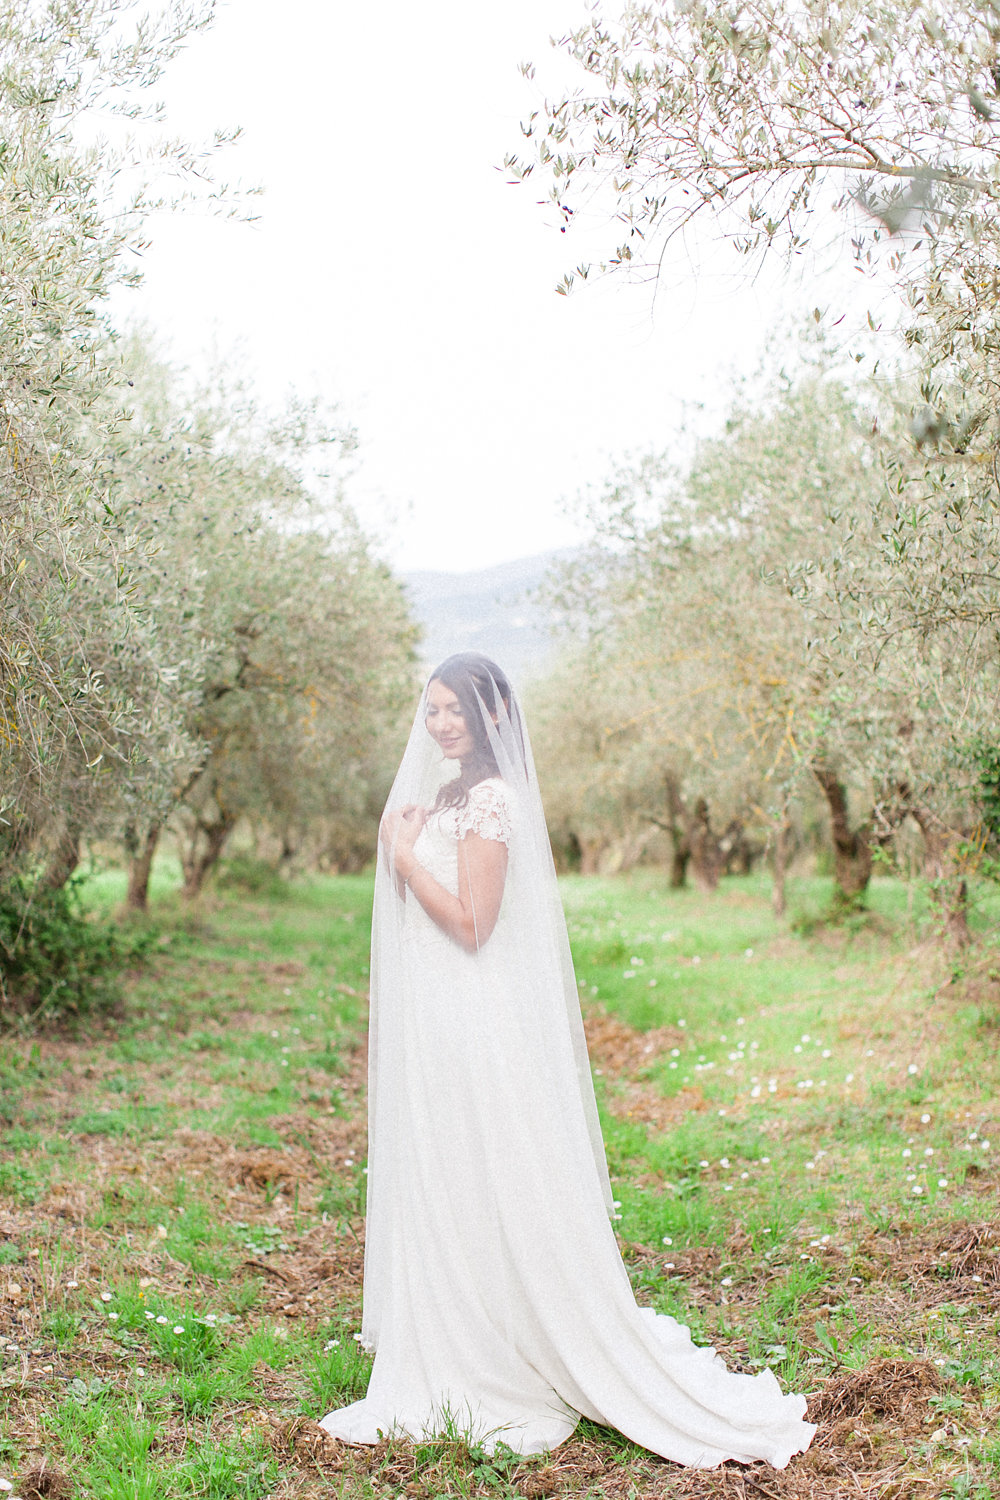 Tuscany Wedding Photographer Roberta Facchini 76